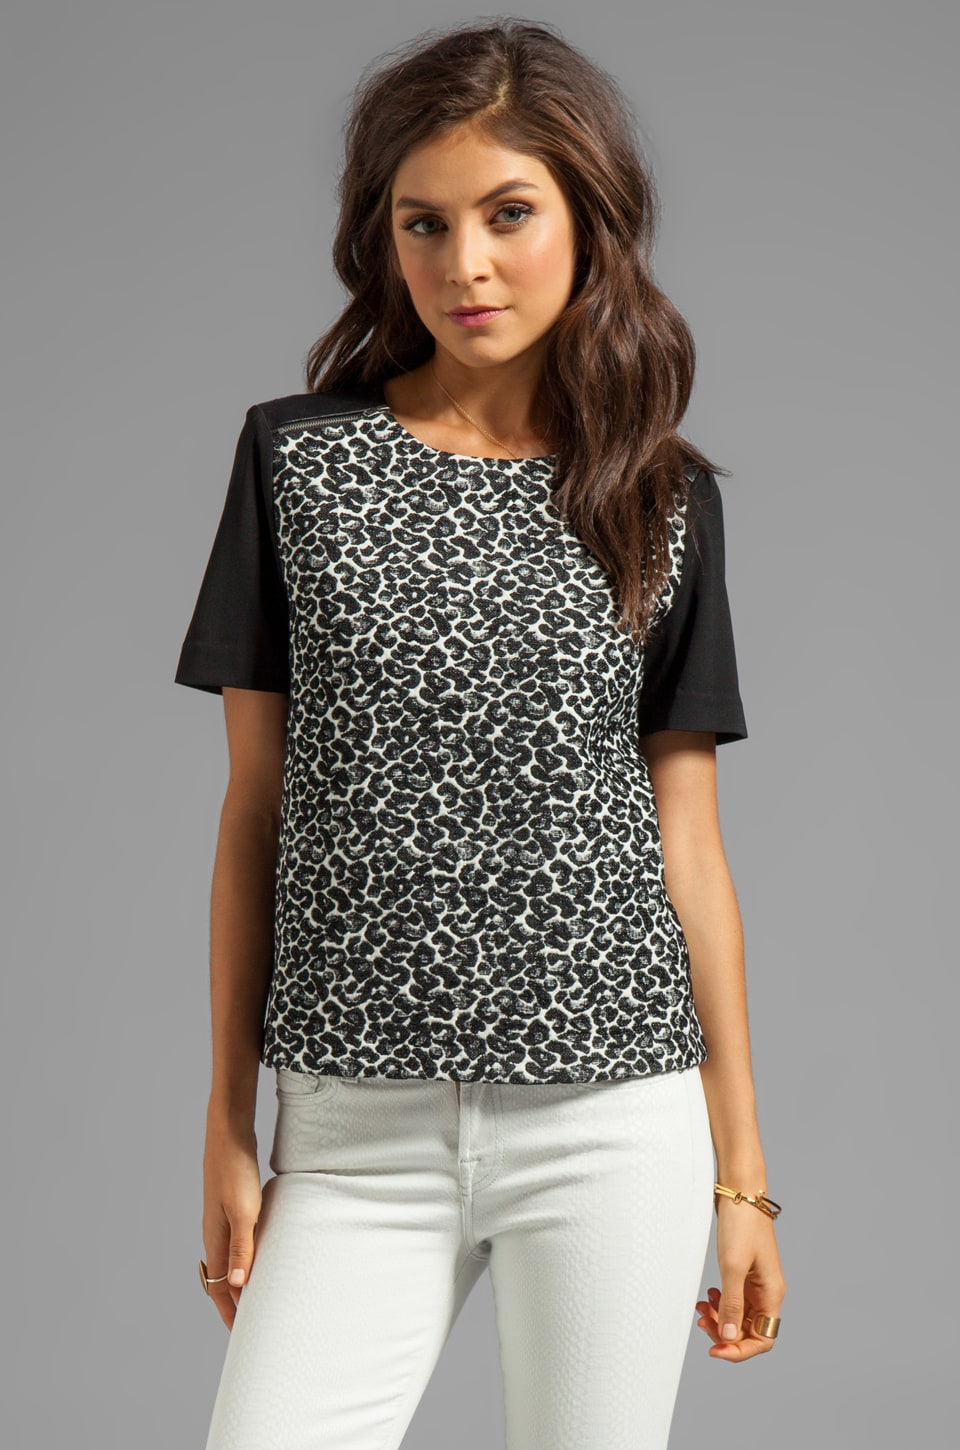 Dolce Vita Cynthia Top in Leopard